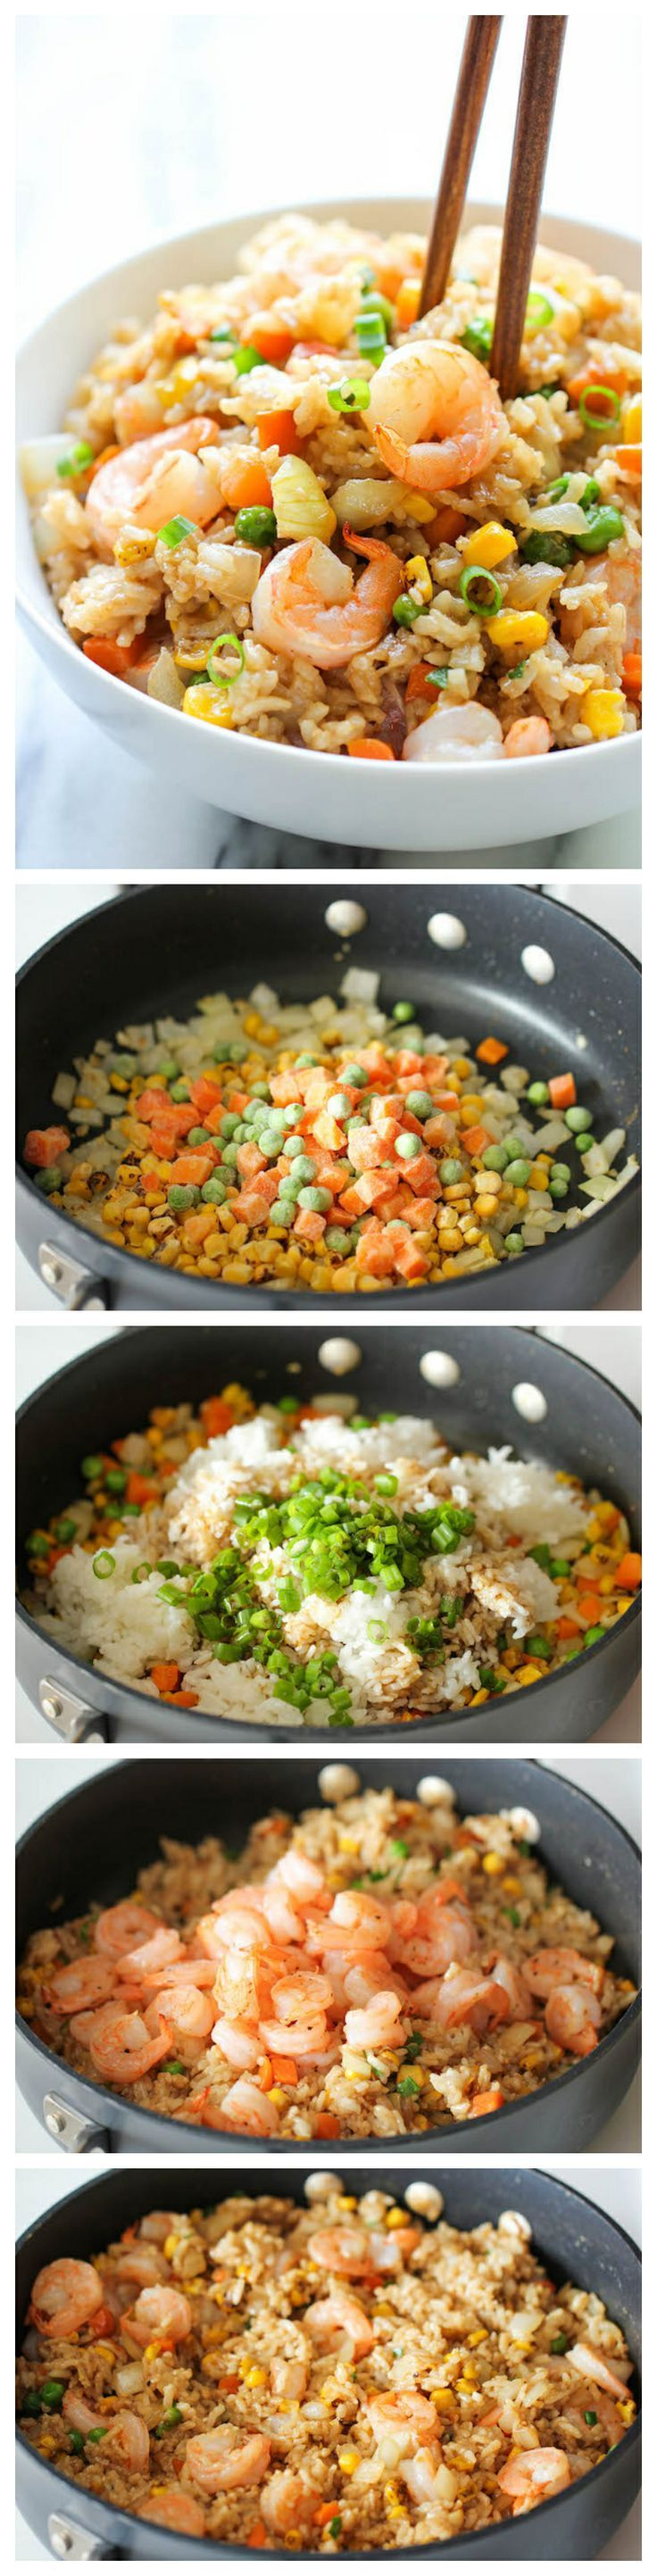 Shrimp Fried Rice | Deliciousness | Pinterest